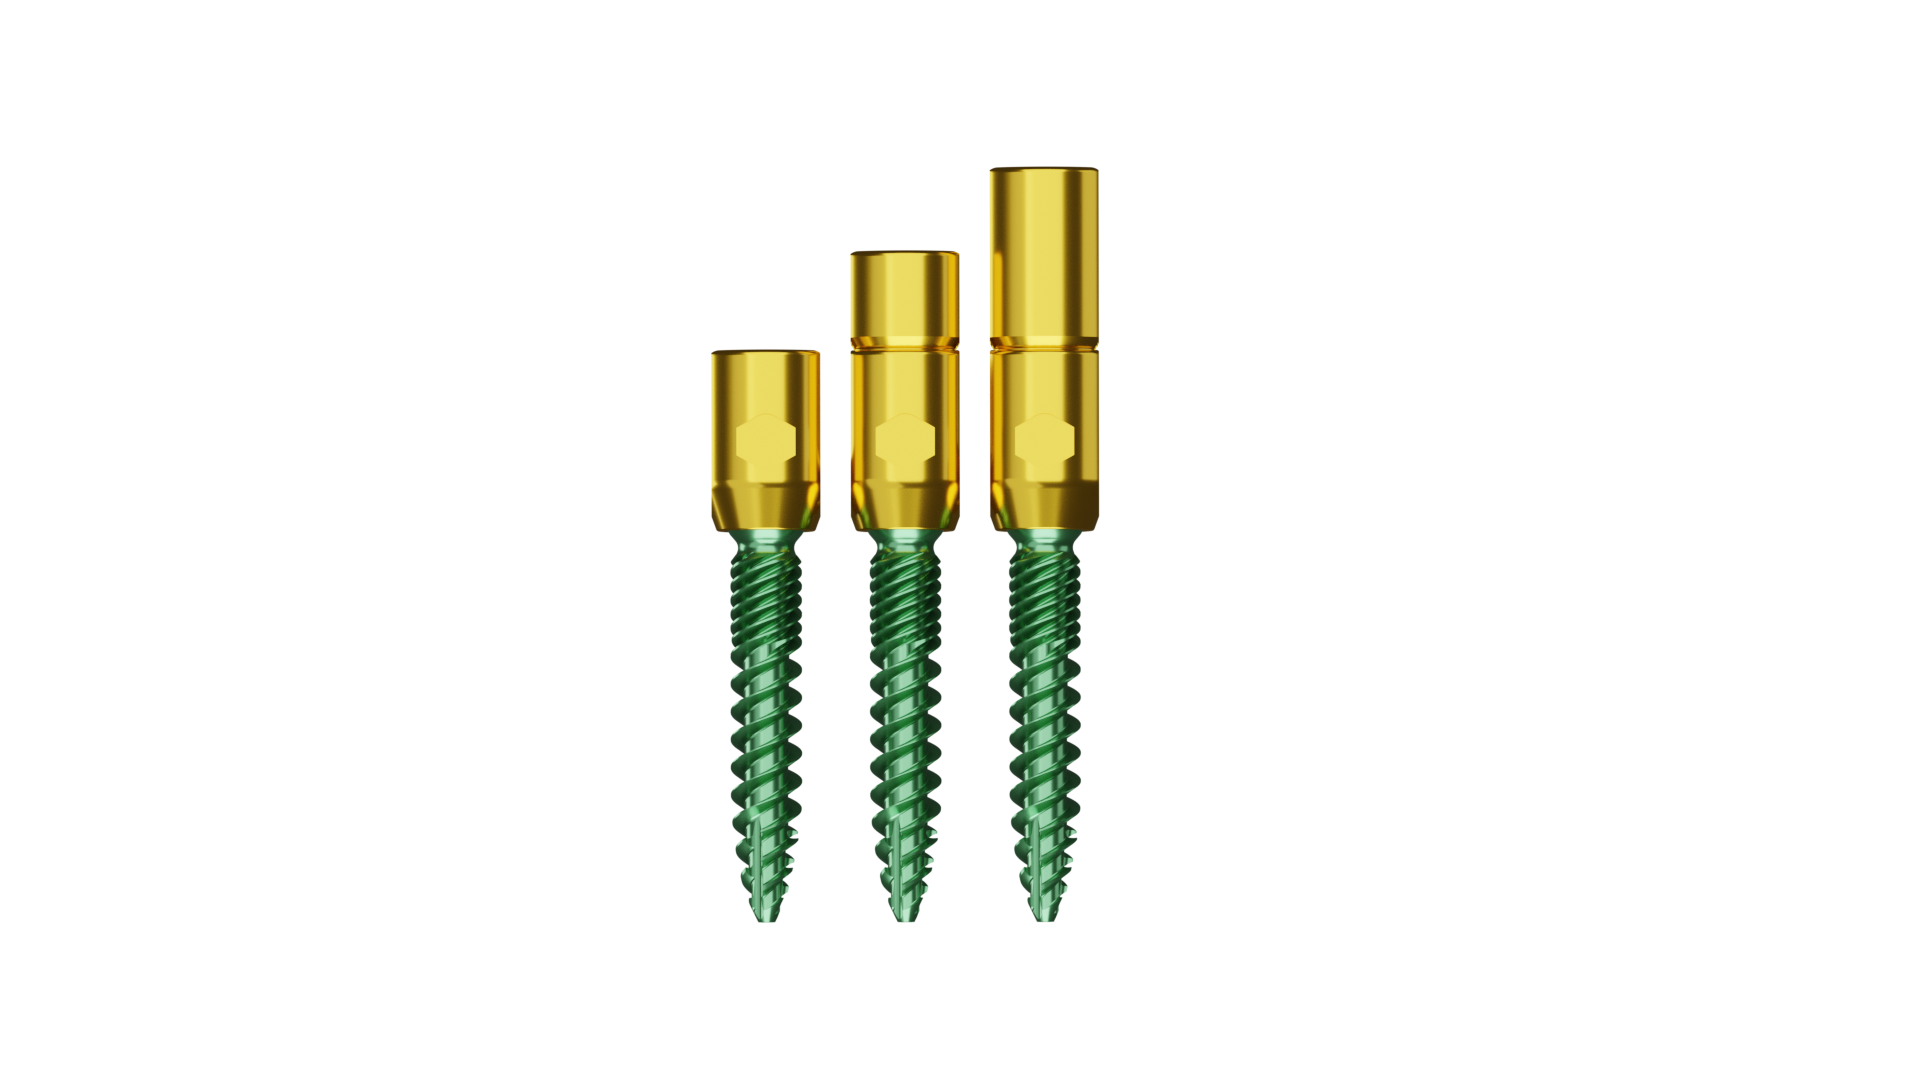 Emerald Green Screw with tighter top threads and a gold tulip / tower.